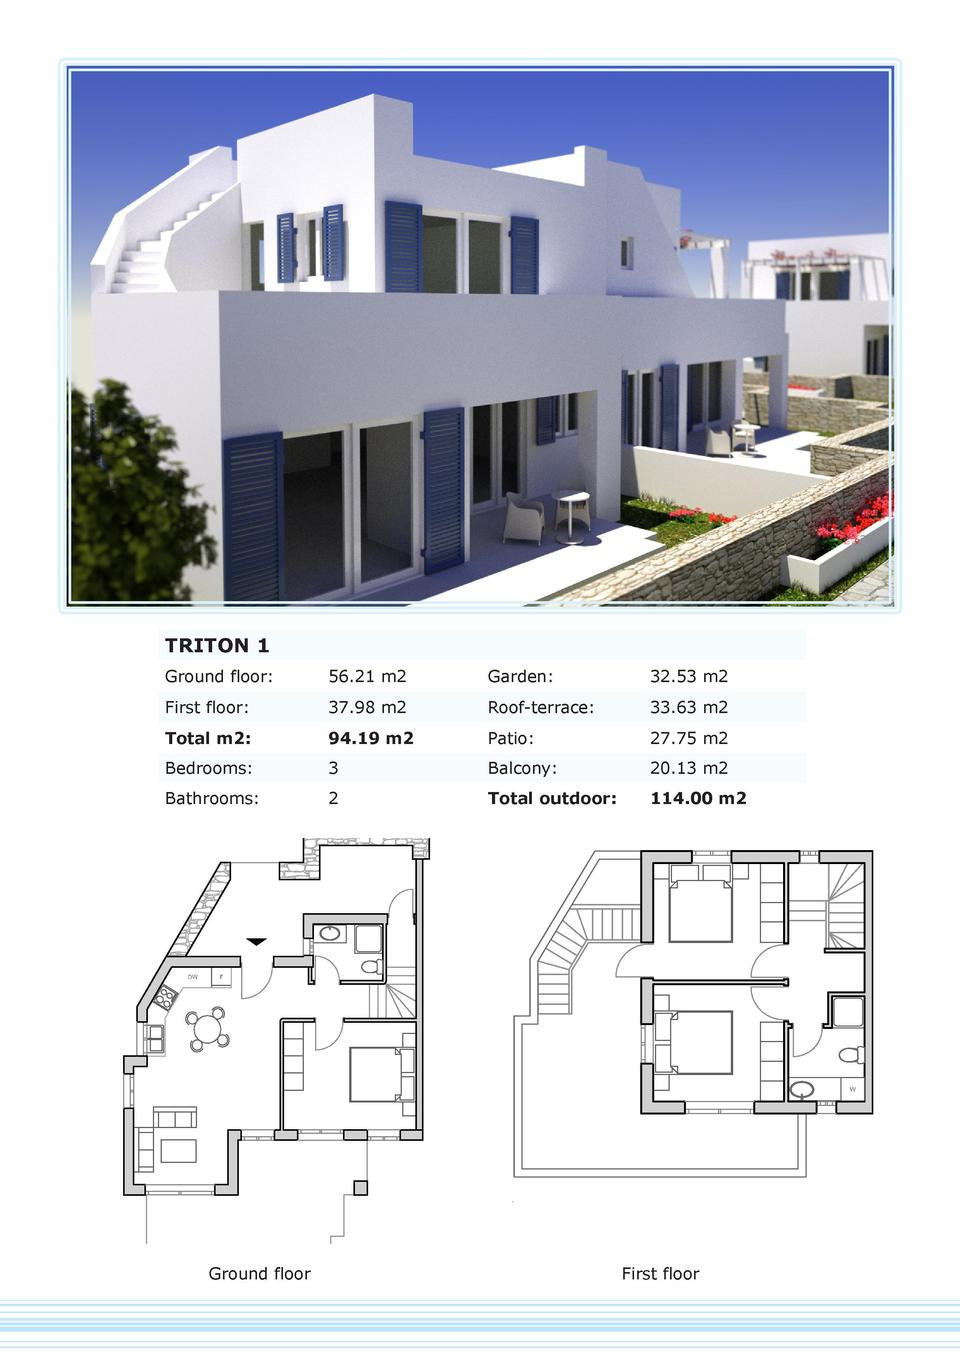 TRITON 1 Ground floor   56.21 m2  Garden   32.53 m2  First floor   37.98 m2  Roof-terrace   33.63 m2  Total m2   94.19 m2 ...